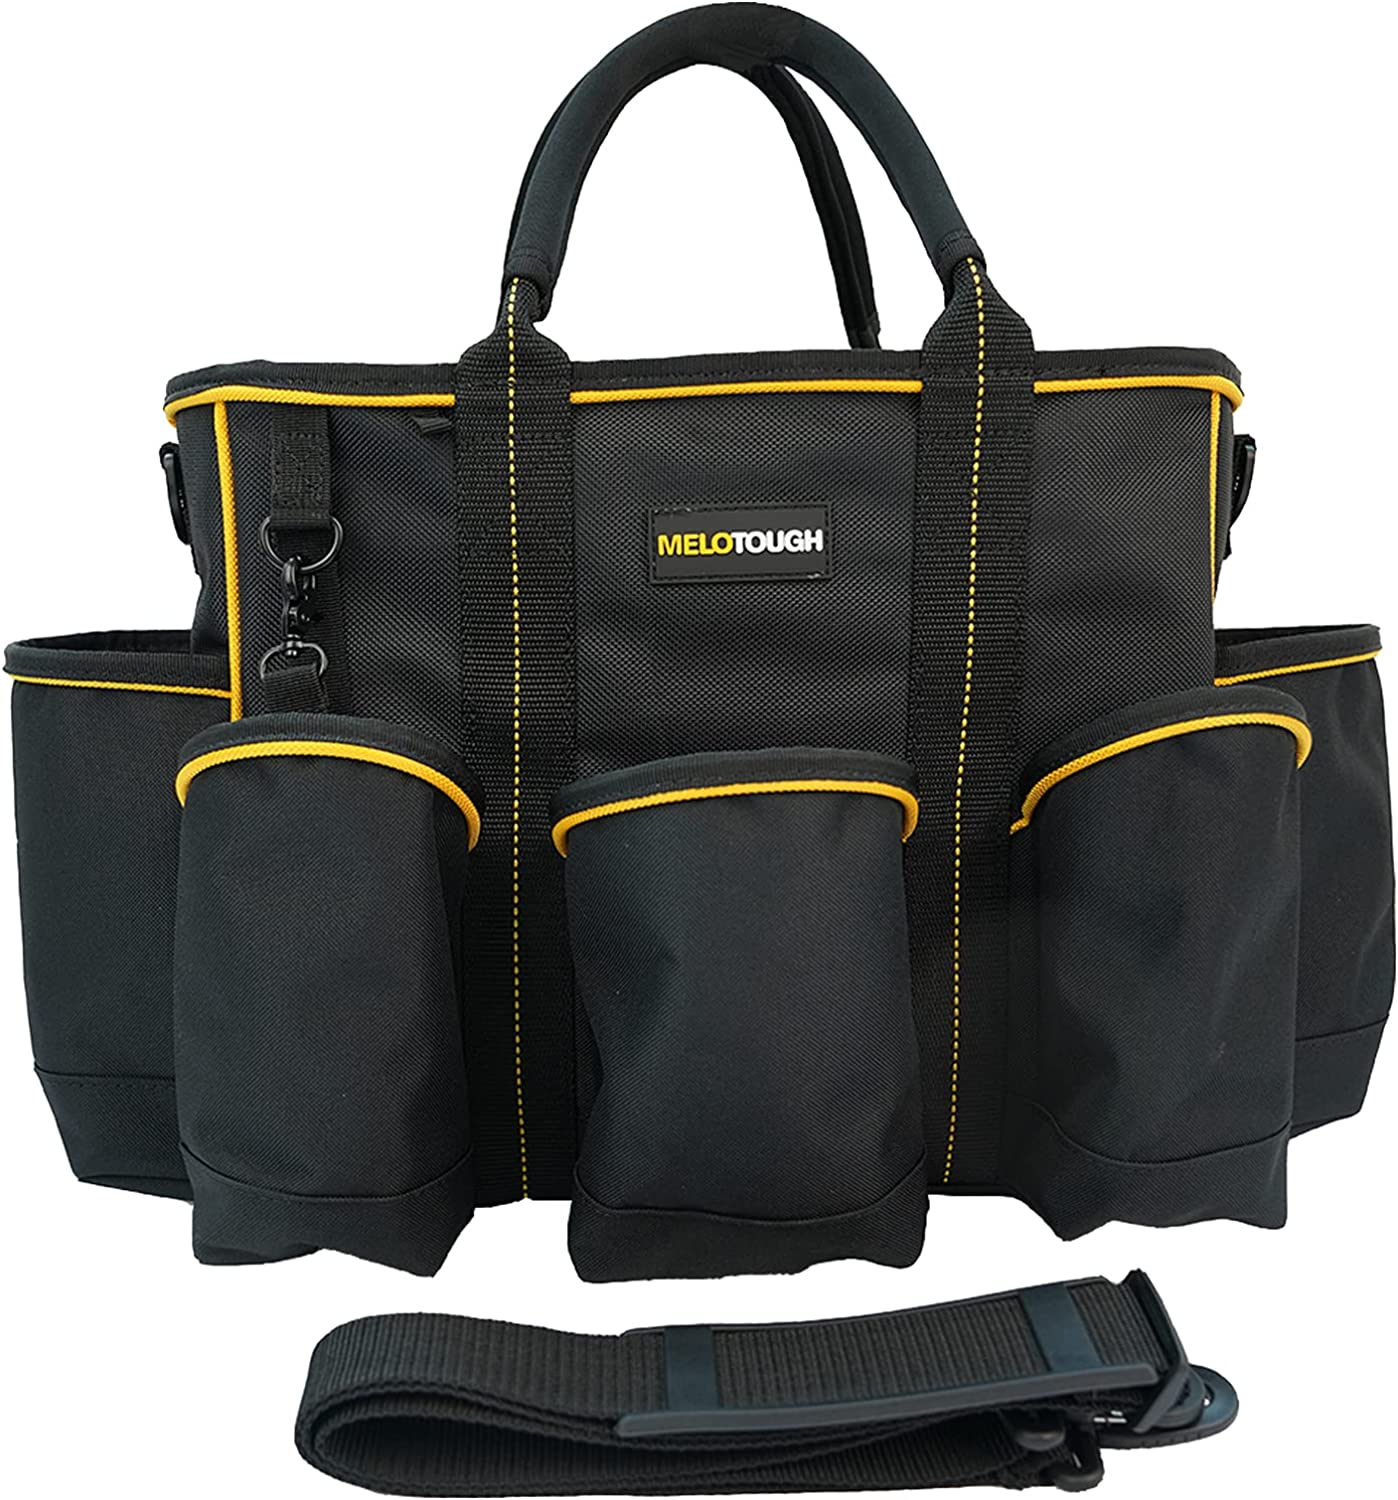 Melo Tough 14 Columbus Mall inch Max 61% OFF Supply bag Top Organi tool Open Tool Tote